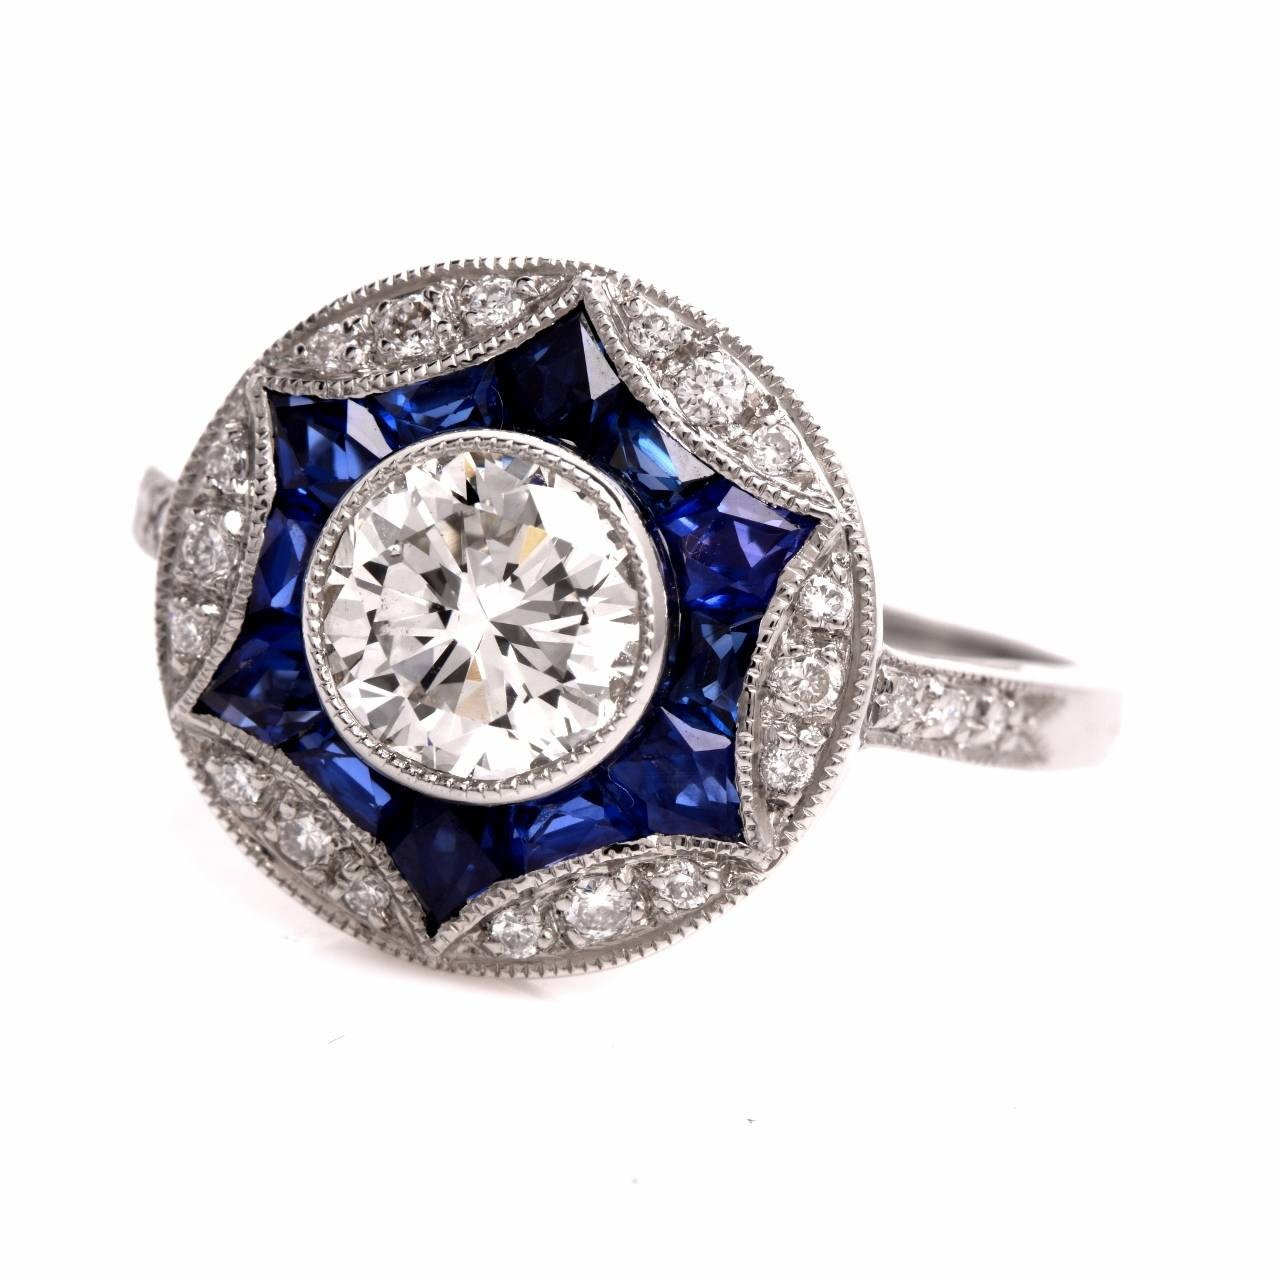 This conspicuous  diamond and sapphire engagement ring of unsurpassed refinement is crafted in solid platinum, depicts a finely mille-grained, color-contrasting orbicular  plaque, exposing at the center an eye-catching  0.95ct outstandingly